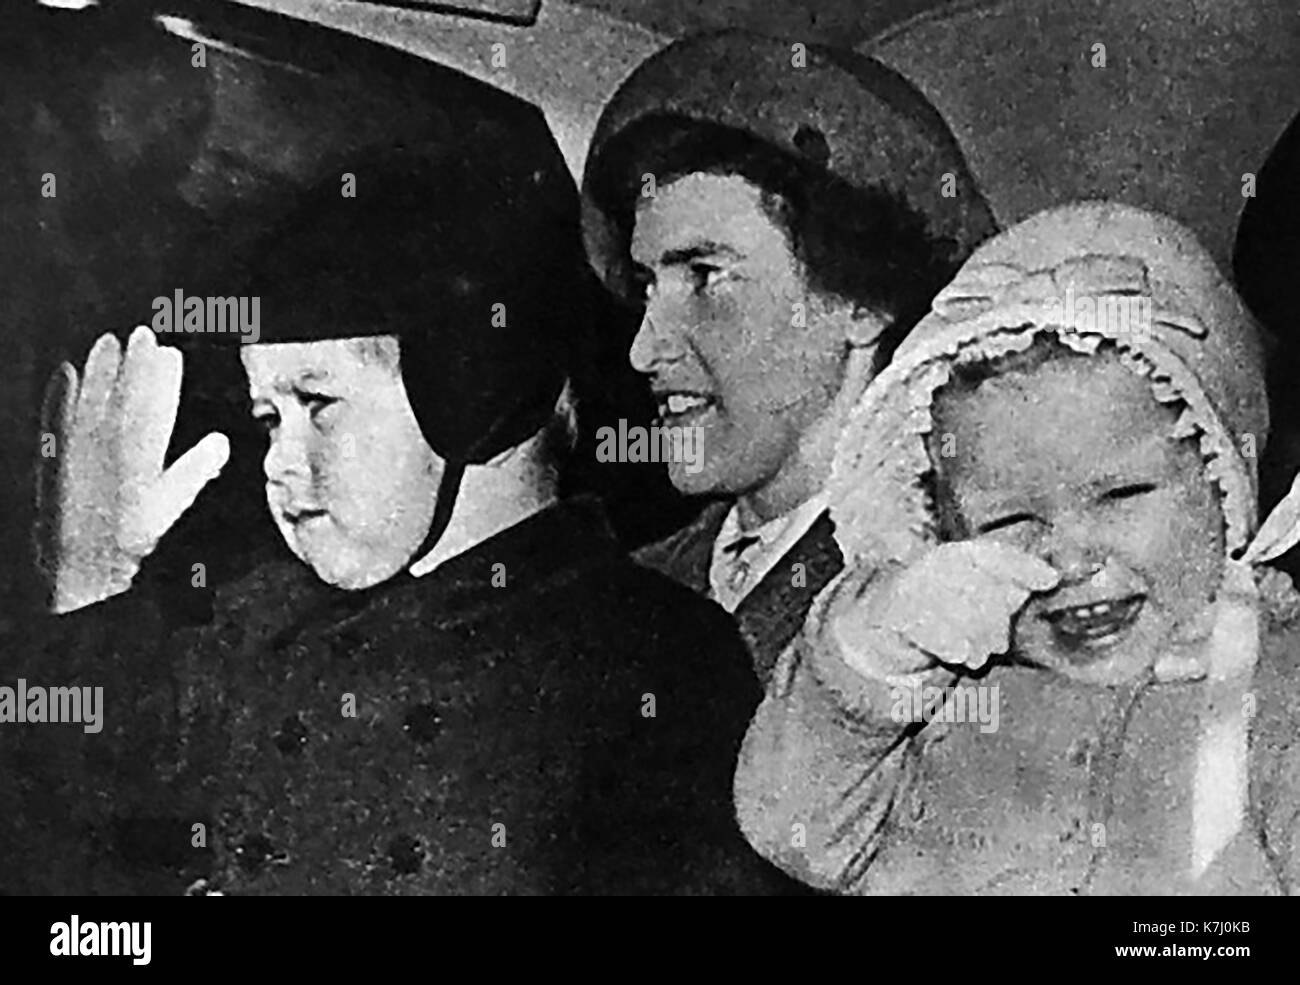 1950 - A magazine photograph showing prince Charles and Princess Anne, children of Queen Elizabeth II of Britain, accompanied by possibly their nanny at the time. - Stock Image